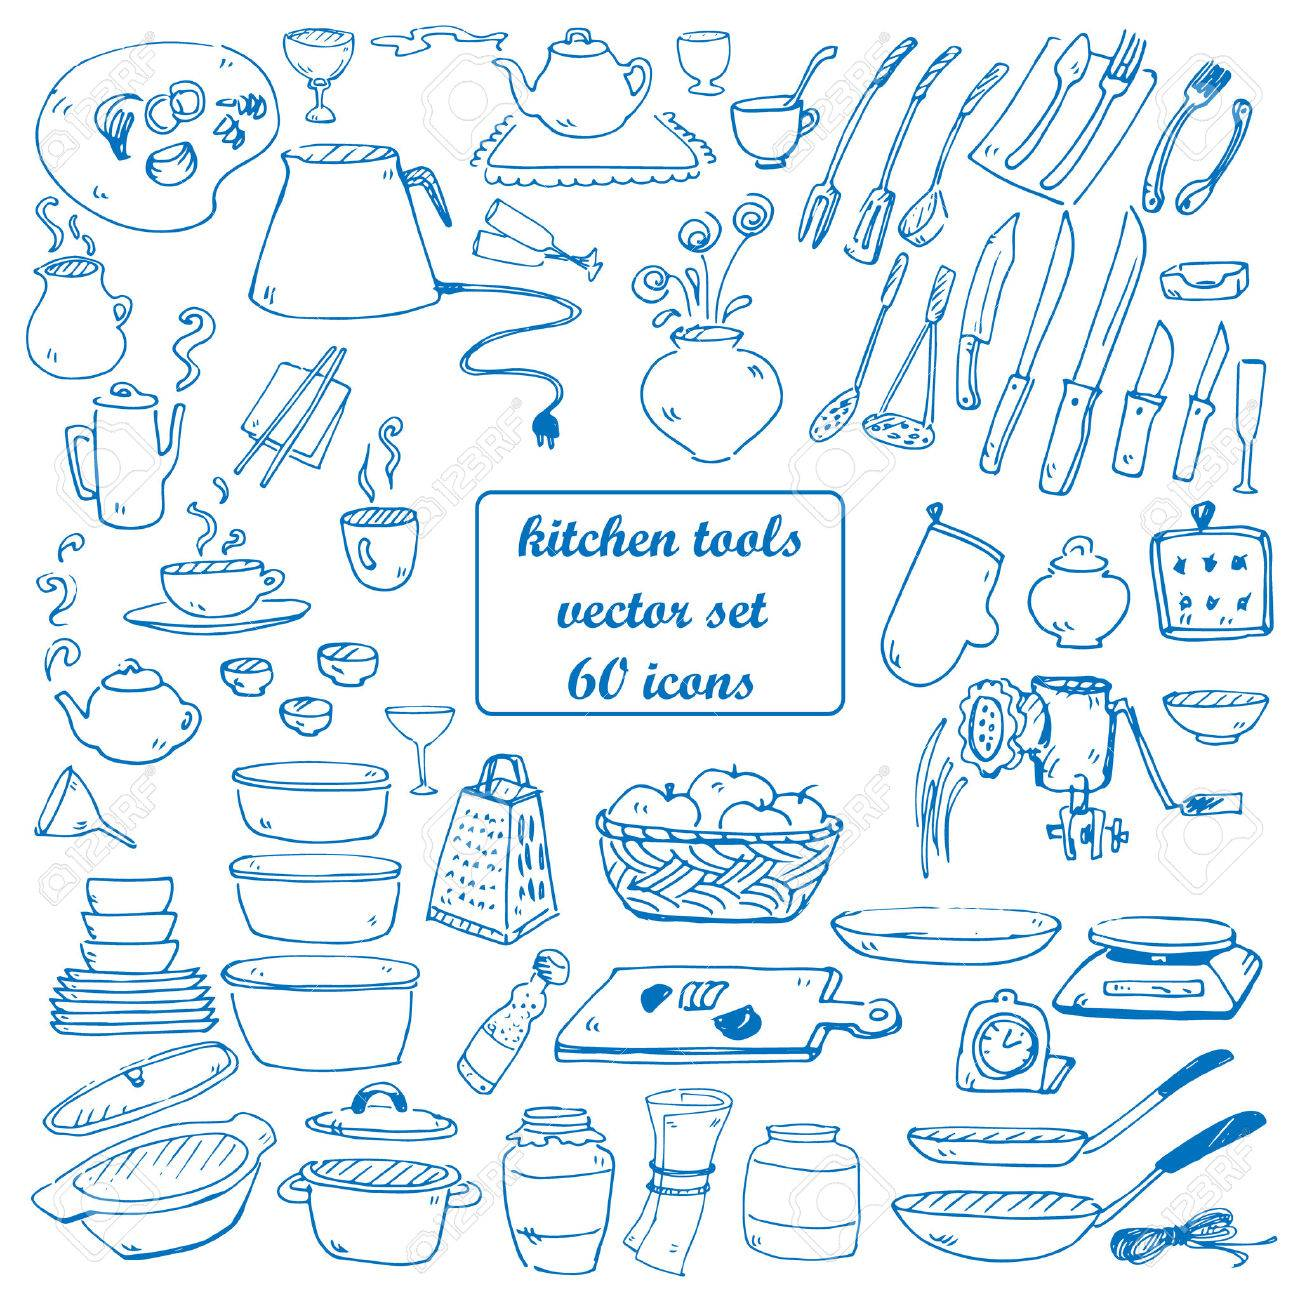 kitchen tools vector doodles collection blue color - 39587150